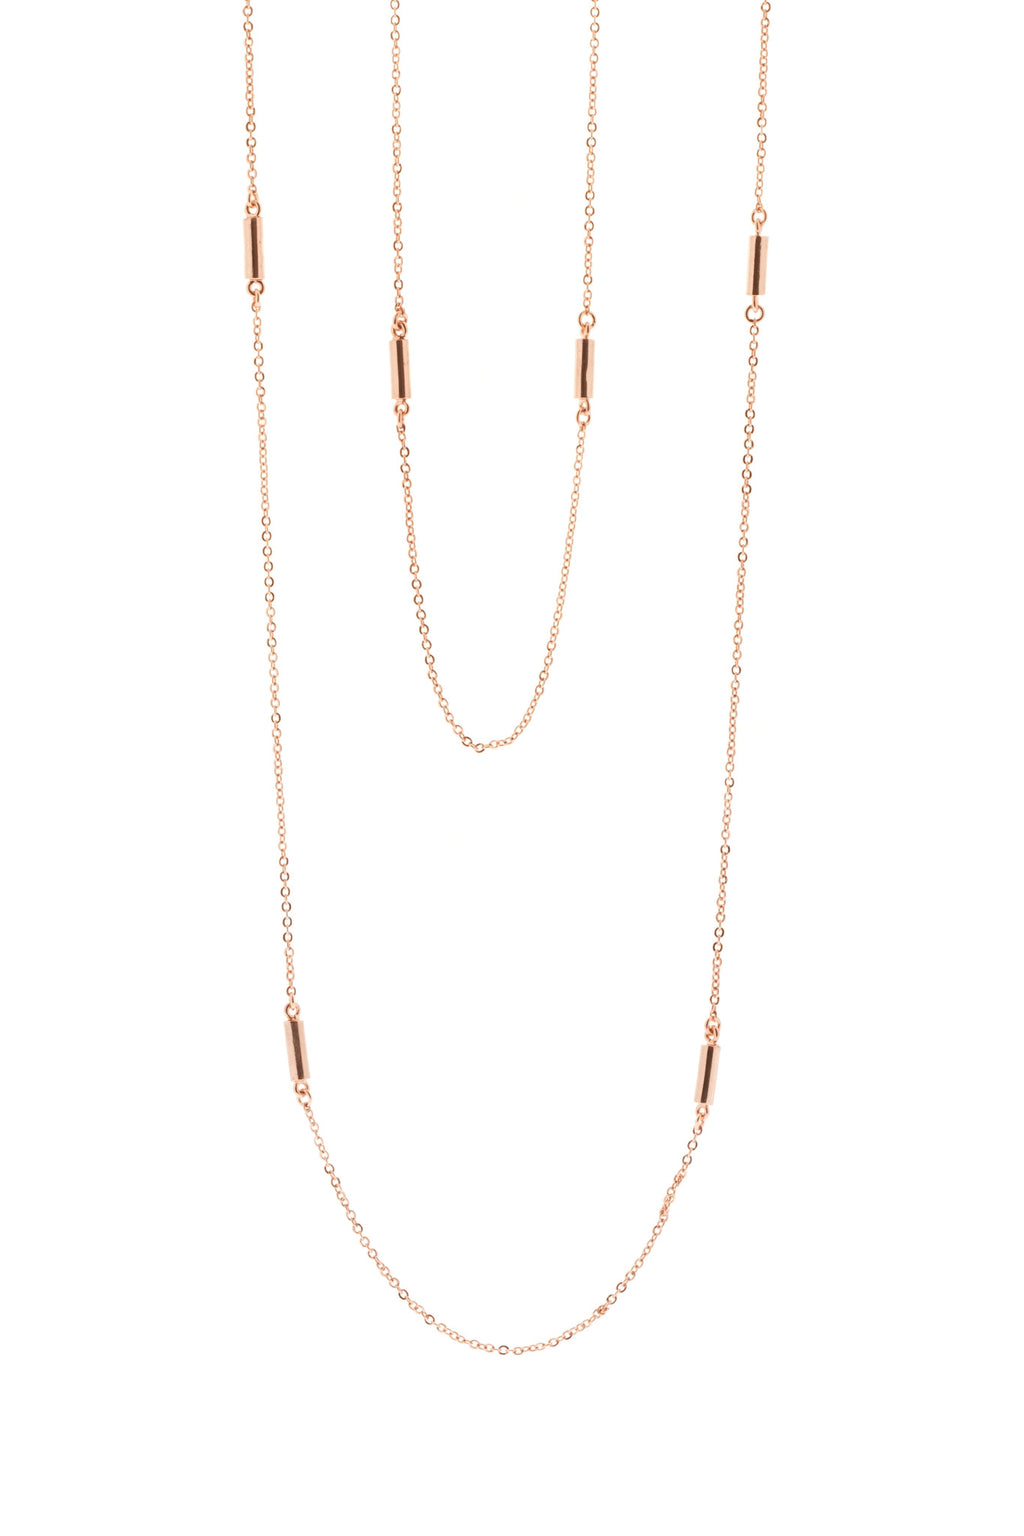 Ogham Engraved Rose Gold Wrap Necklace